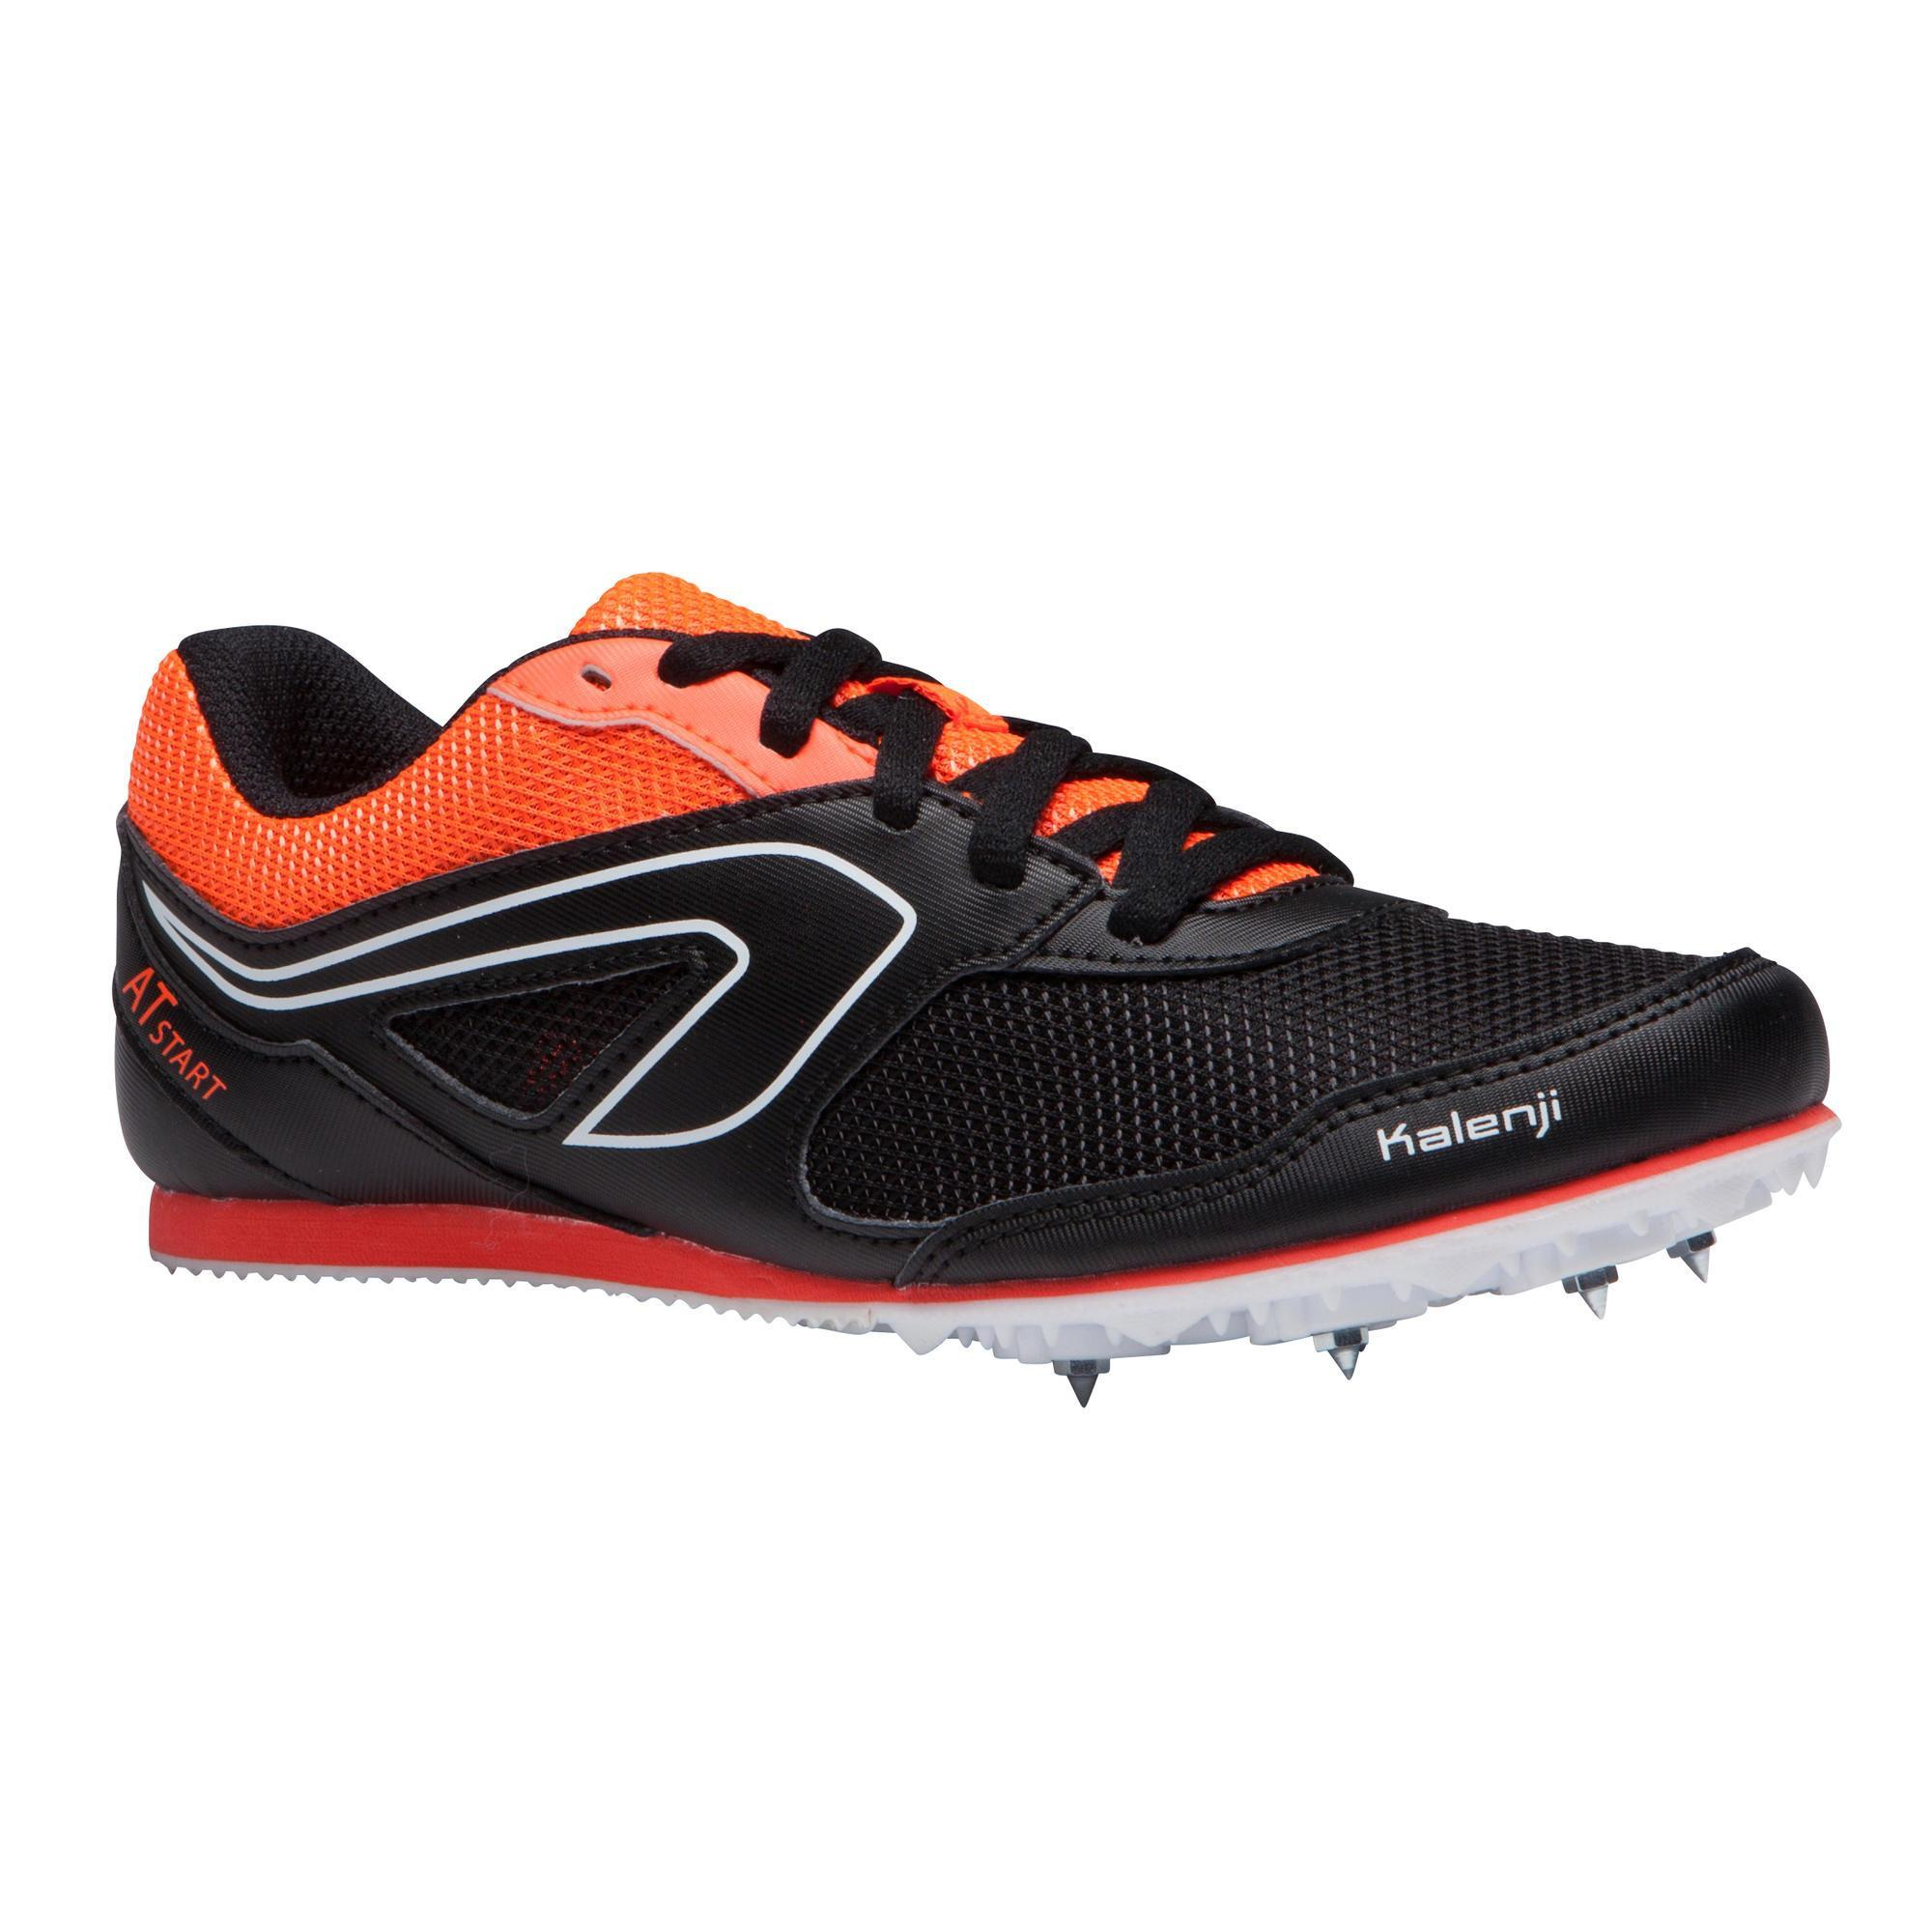 fcc9be76bb961 Comprar zapatillas de cross y atletismo